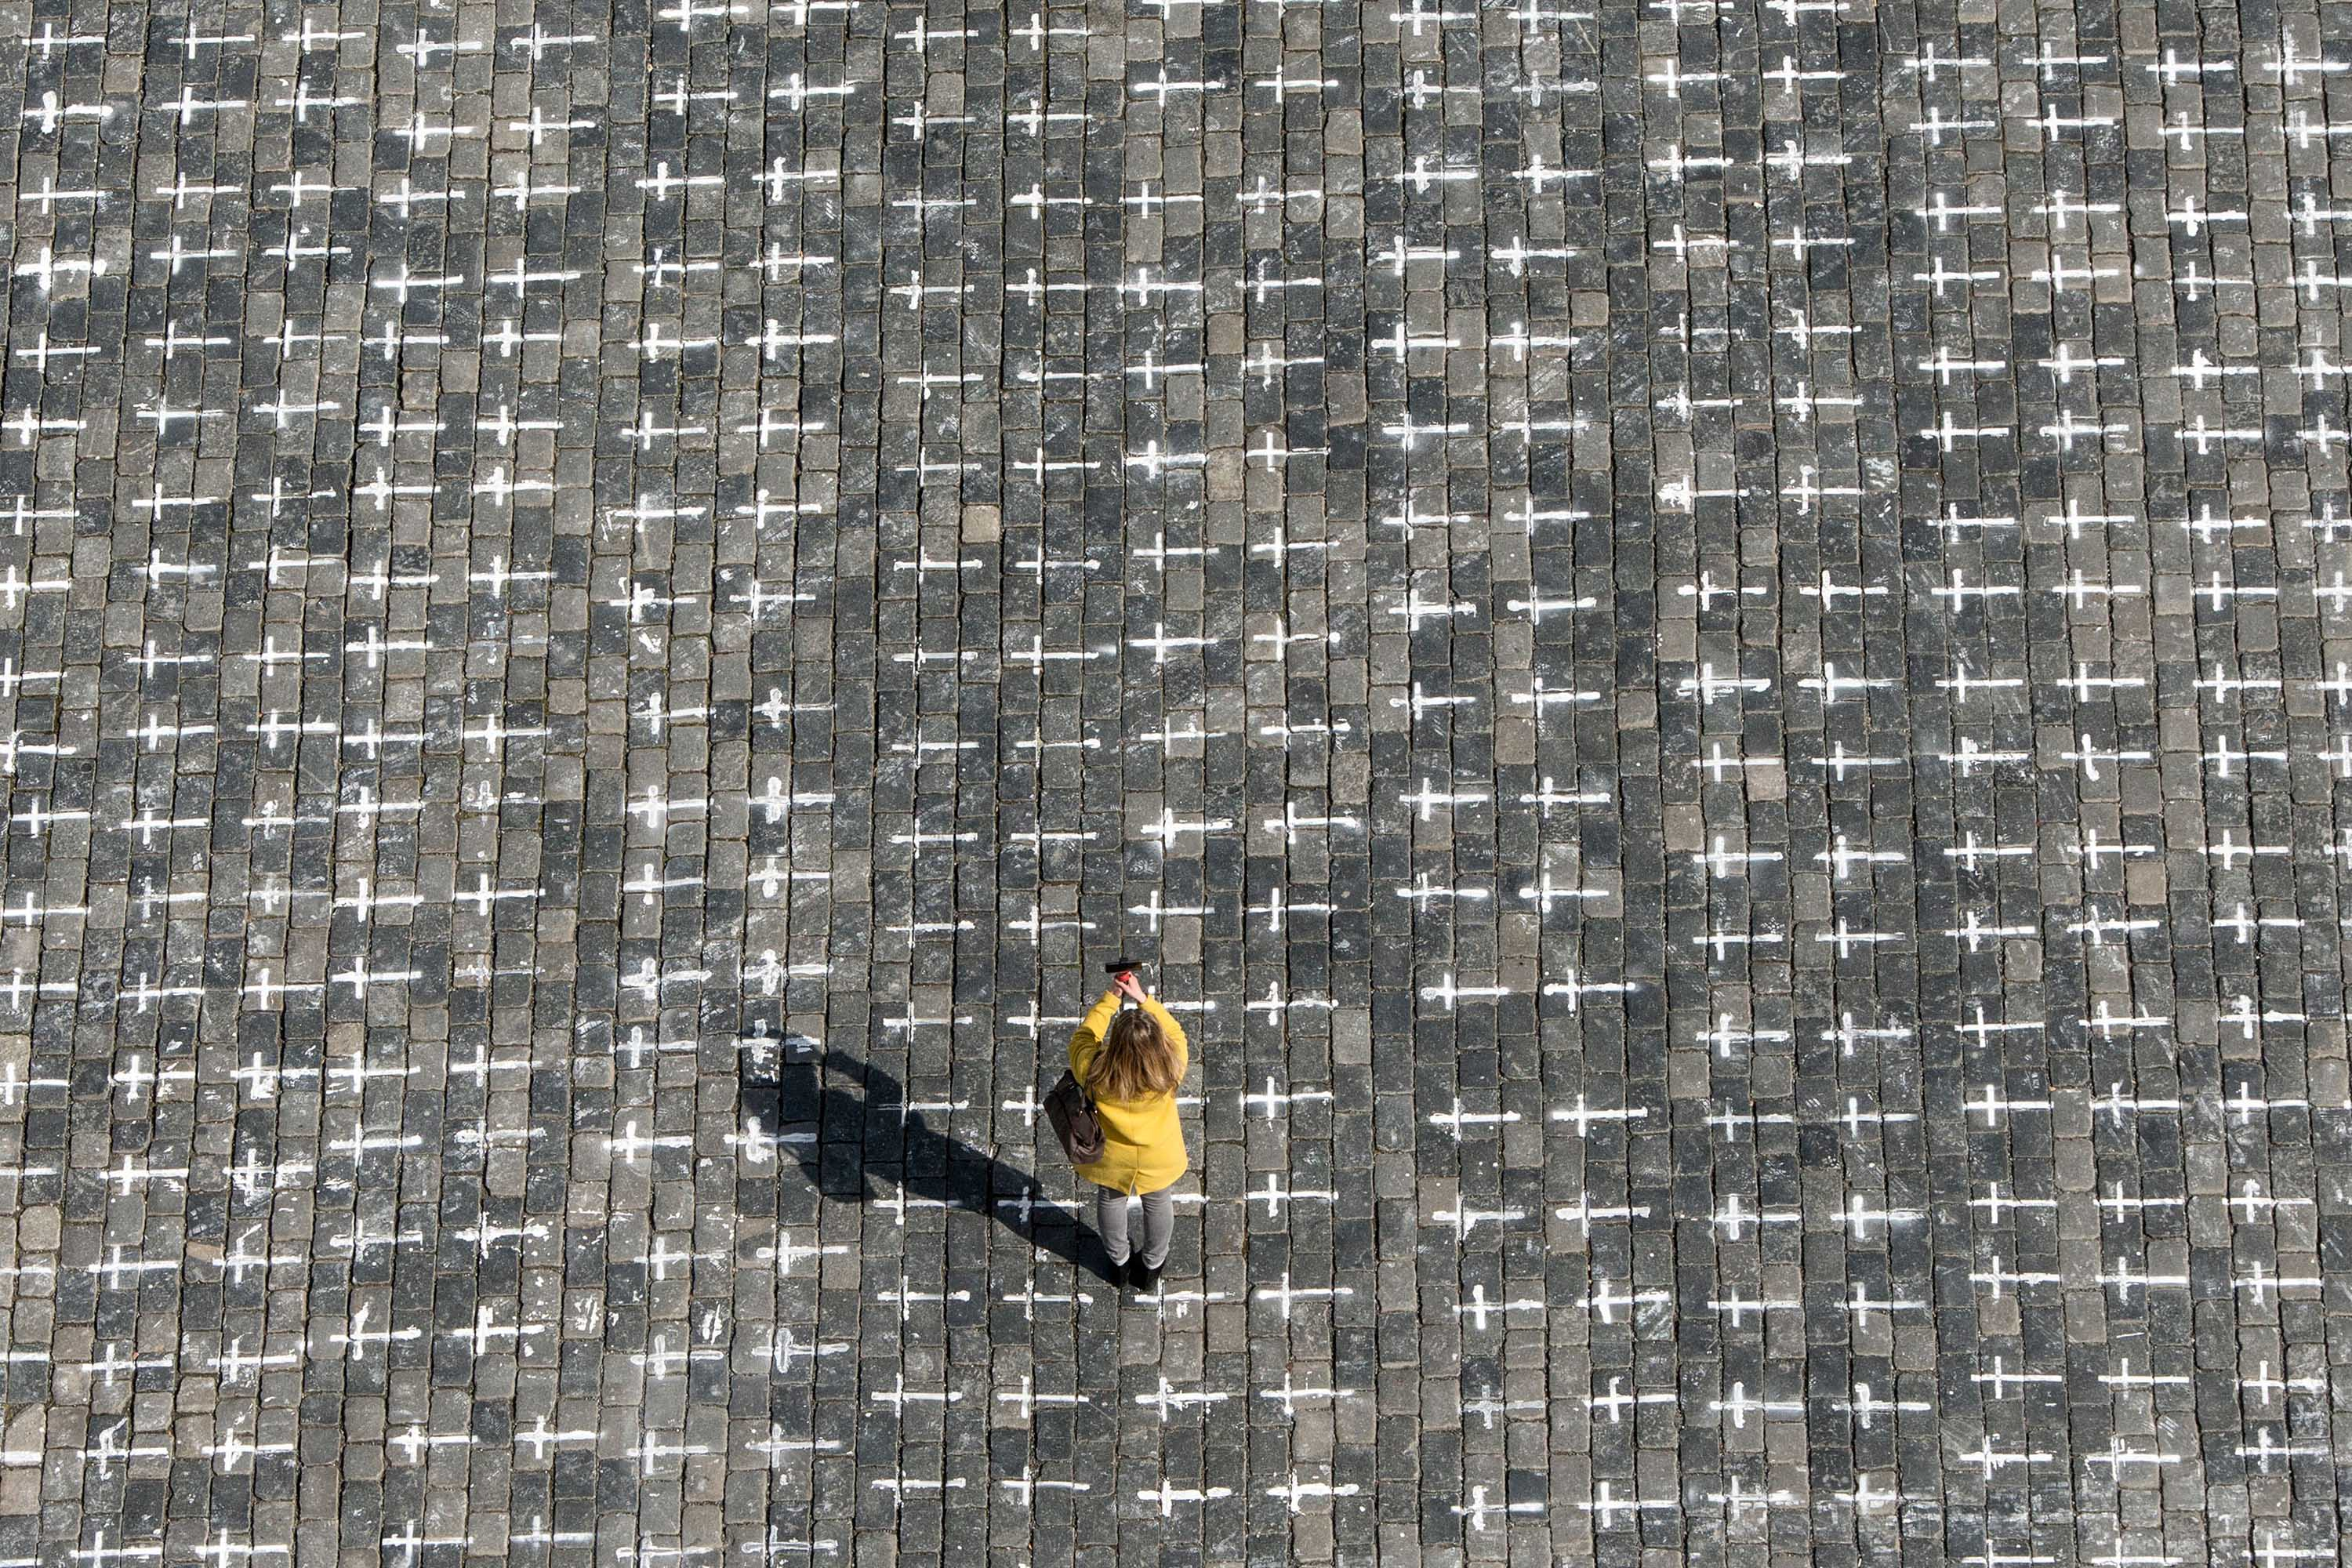 A person takes a photo at the Old Town Square in Prague, Czech Republic, on March 22, where thousands of crosses have been drawn on the pavement to commemorate the first anniversary since the death of the first Czech coronavirus patient.